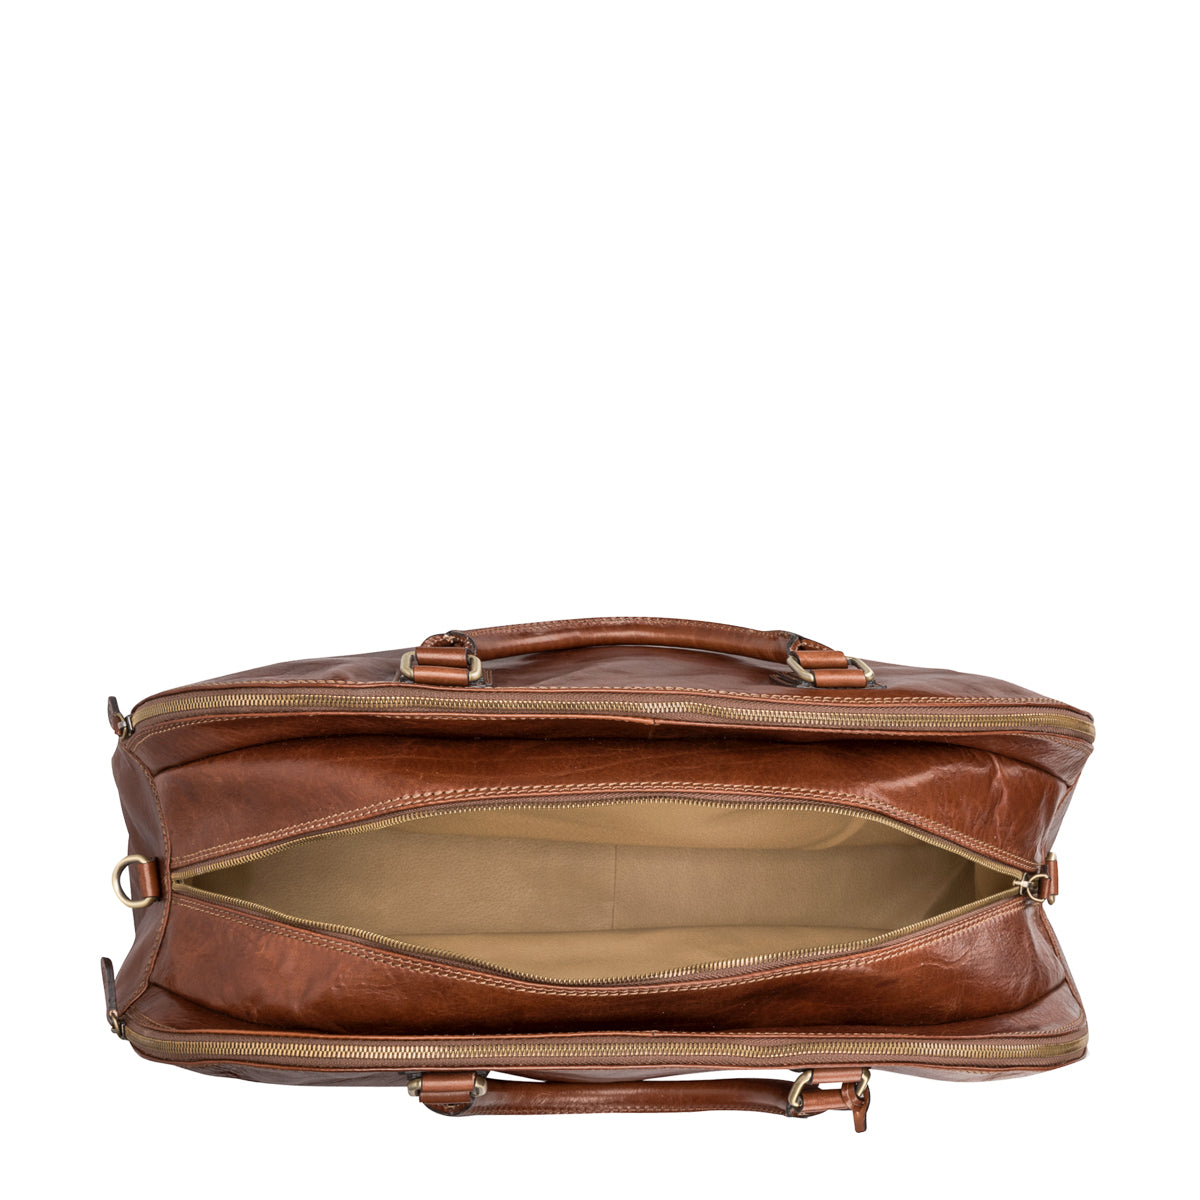 Image 5 of the 'Liliana' Chestnut Veg-Tanned Leather Holdall